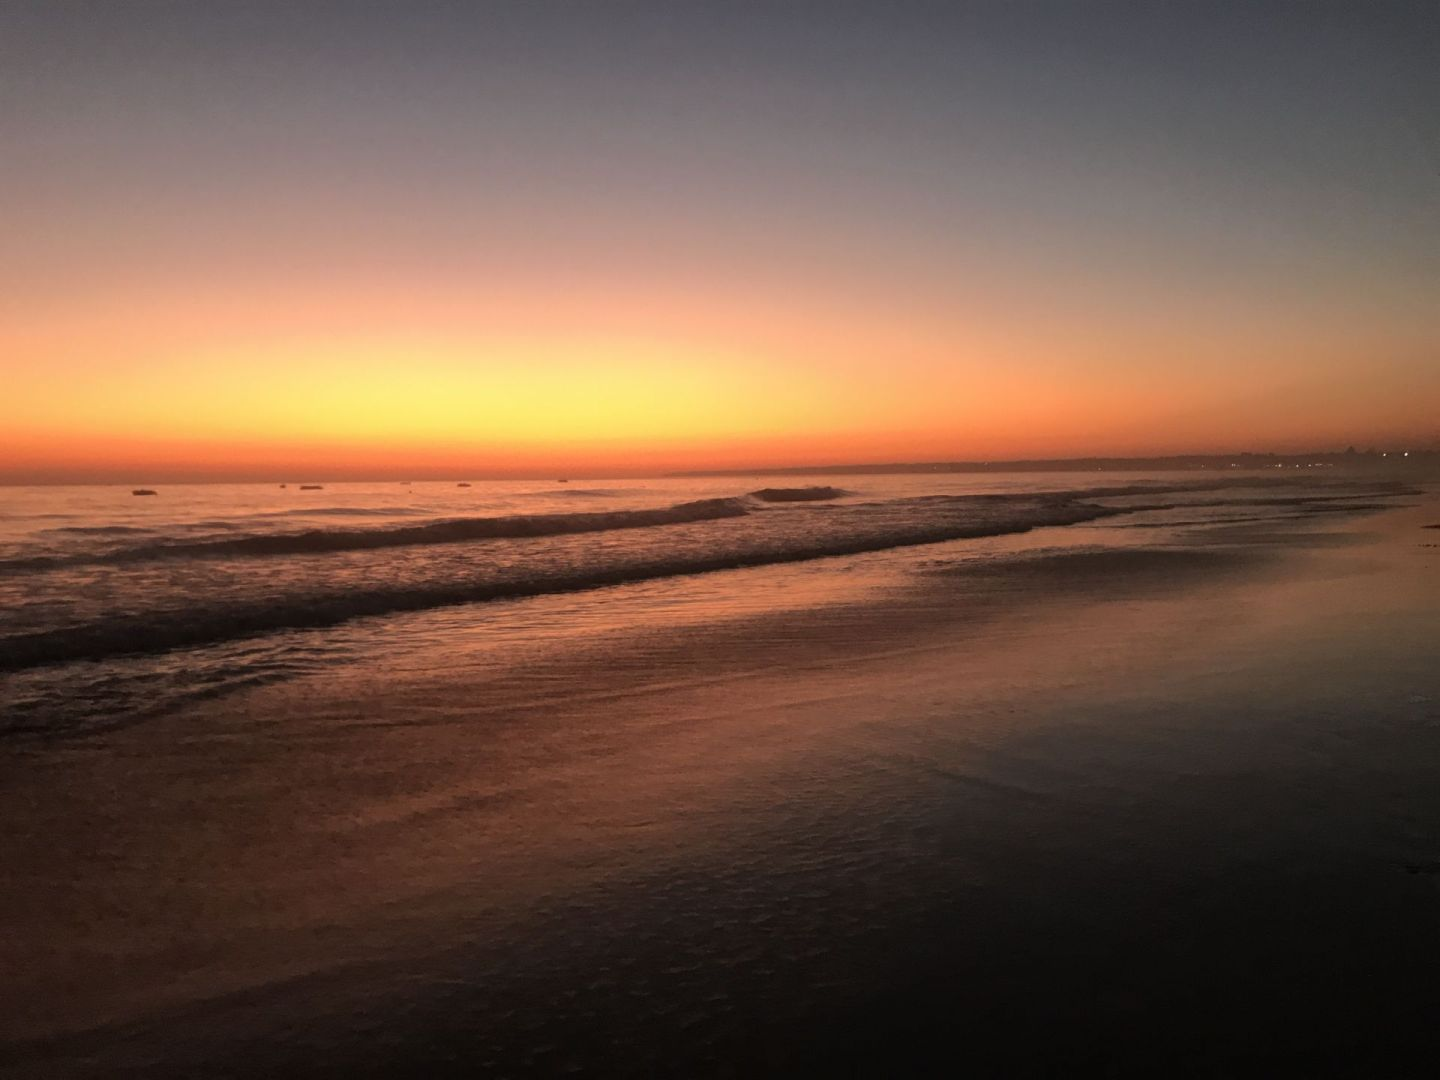 Sunset at Gale beach